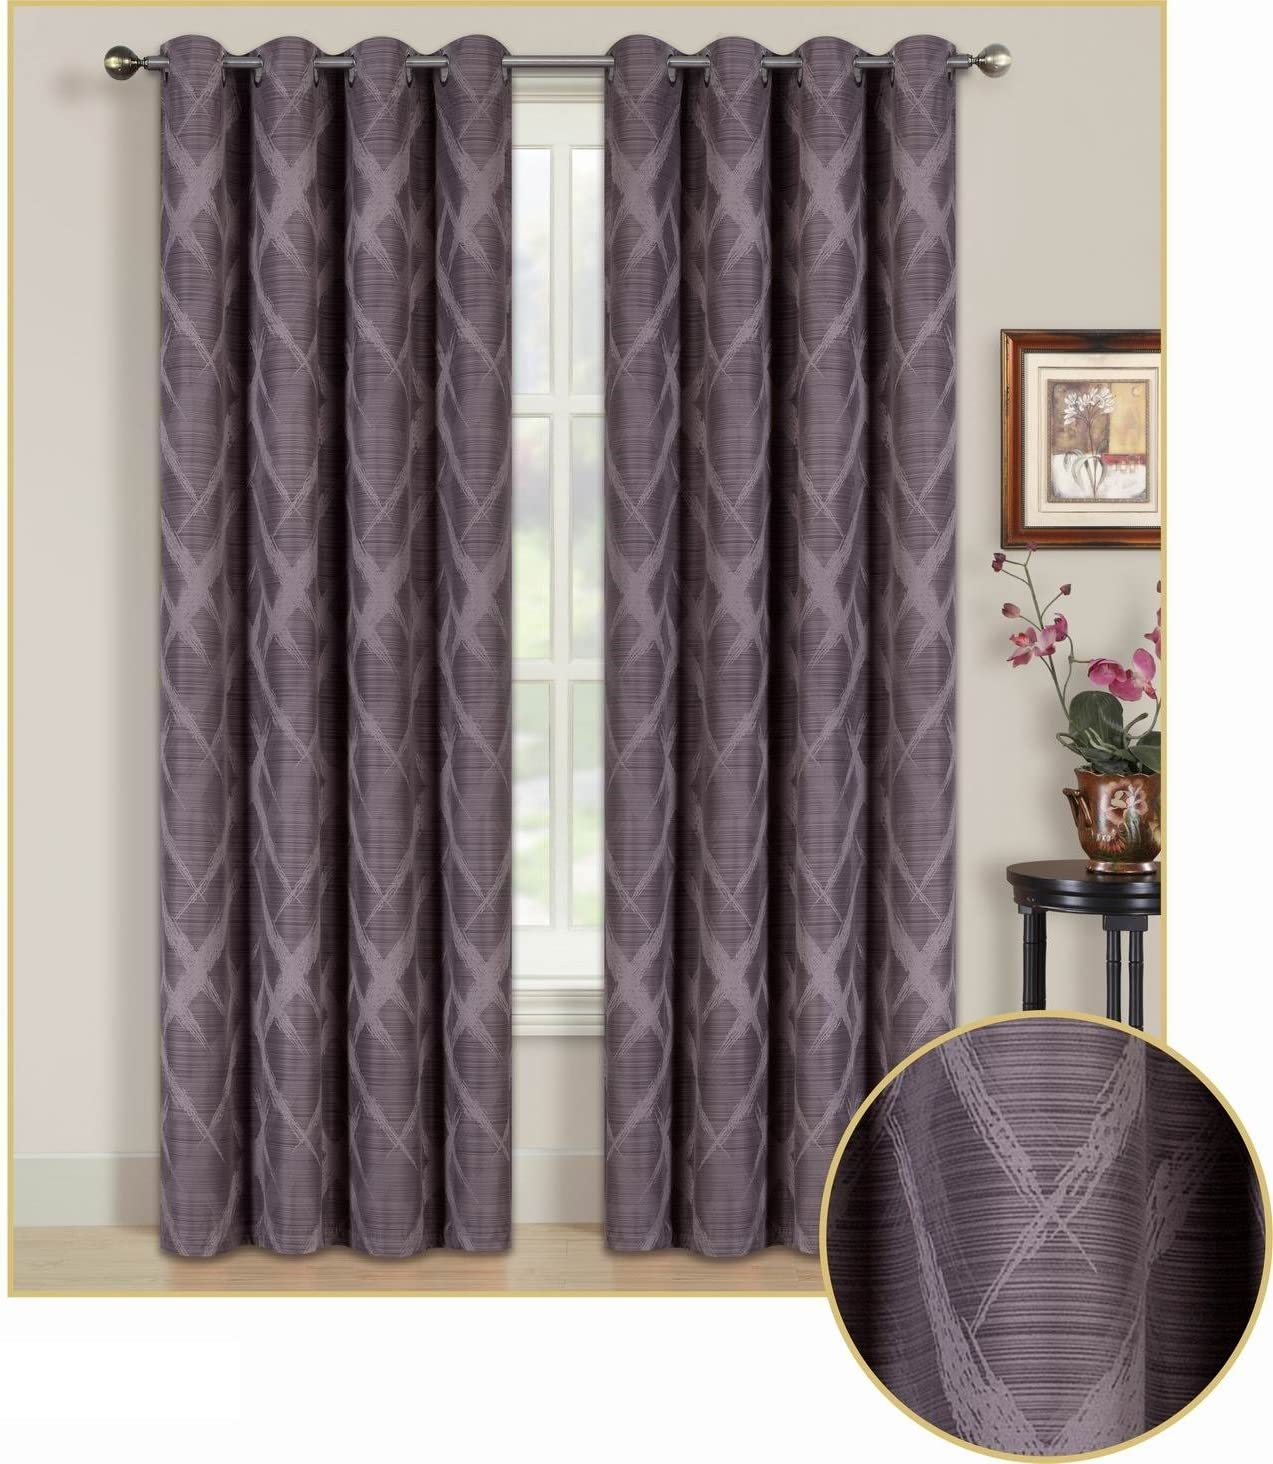 All American Collection Blackout Curtain with Brushed Diamond Pattern 84 Length Grommet Design 96 Length, Purple